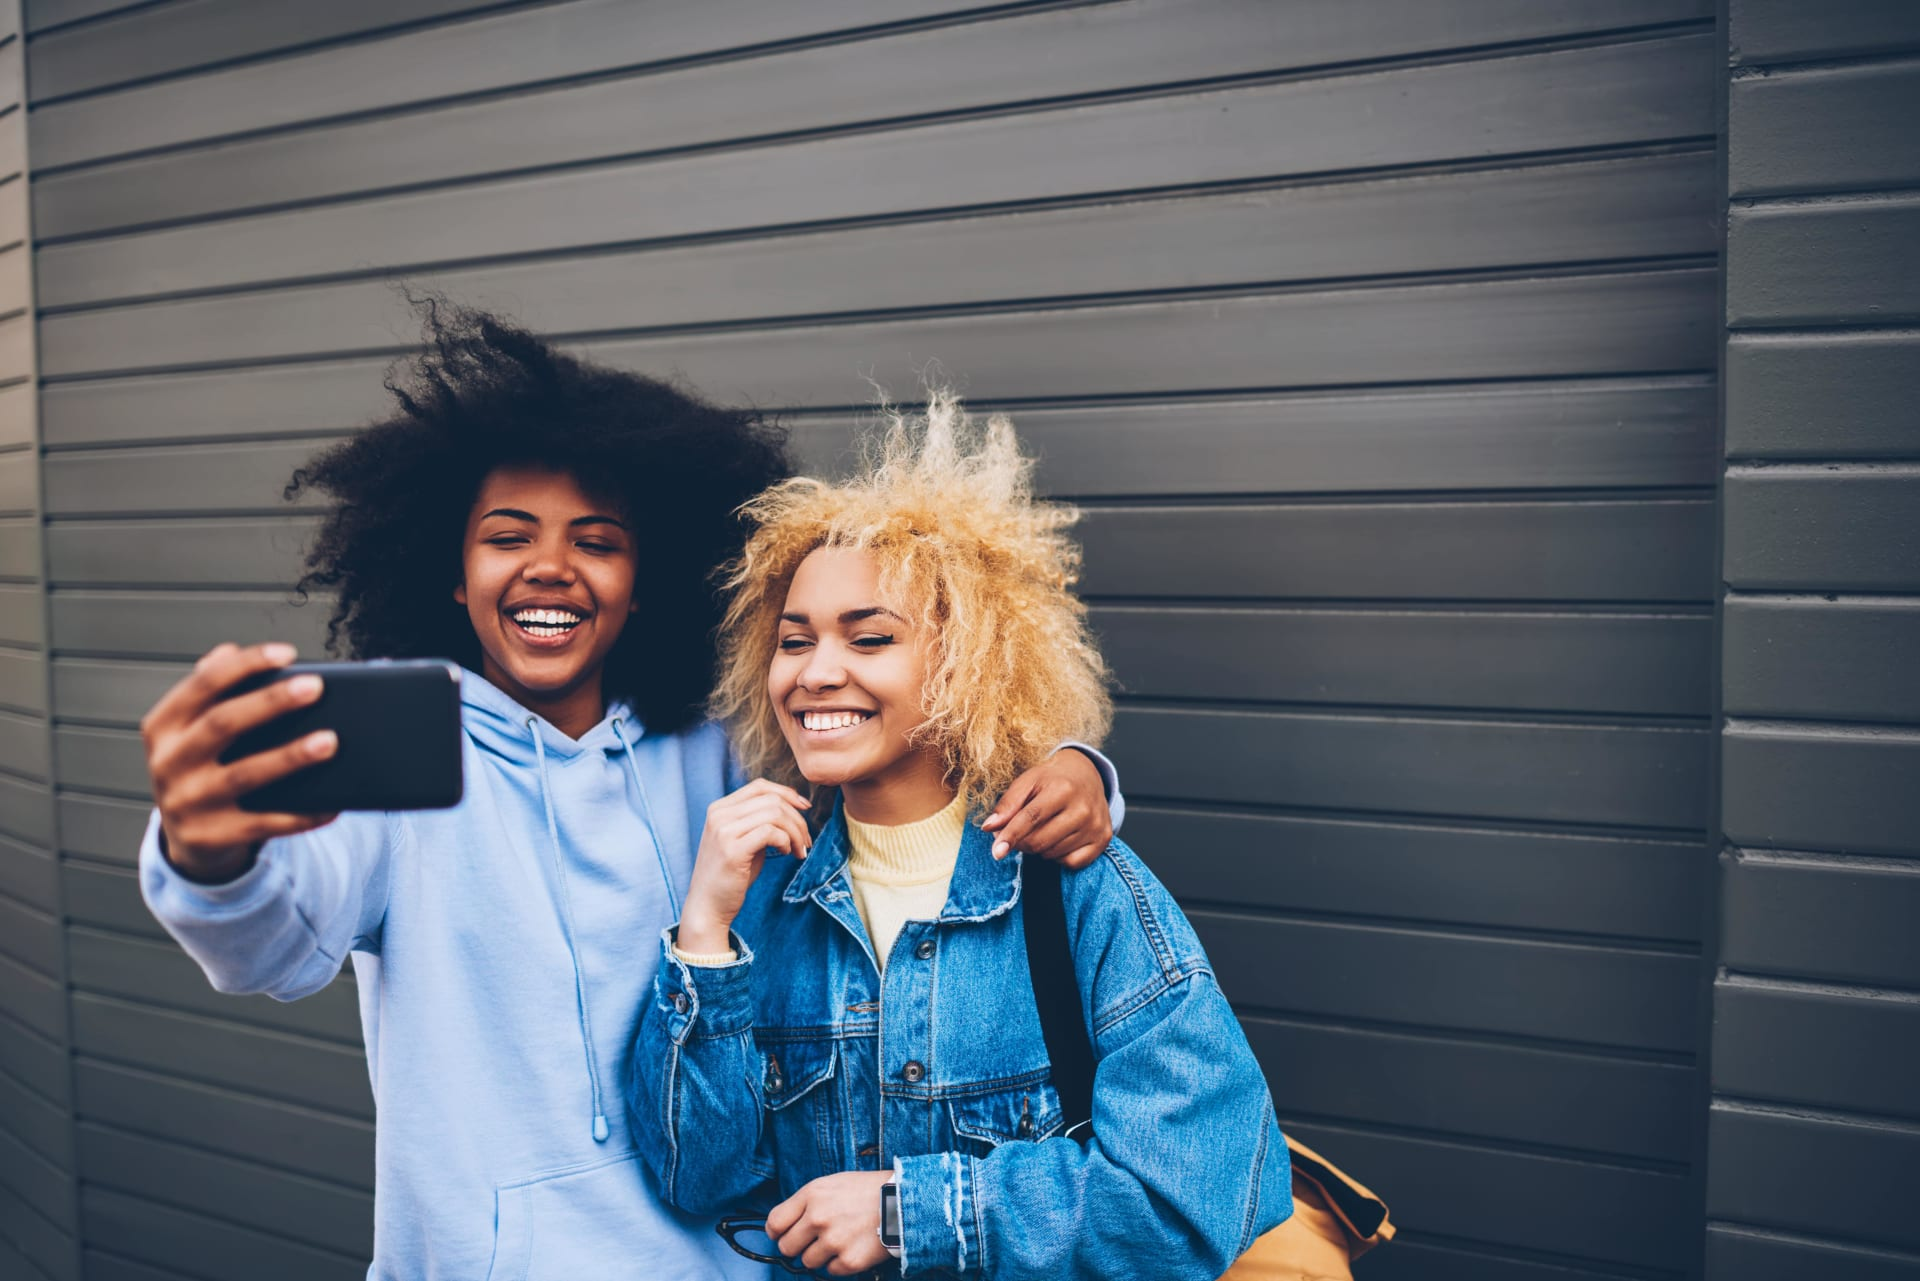 Girls smiling and taking a selfie